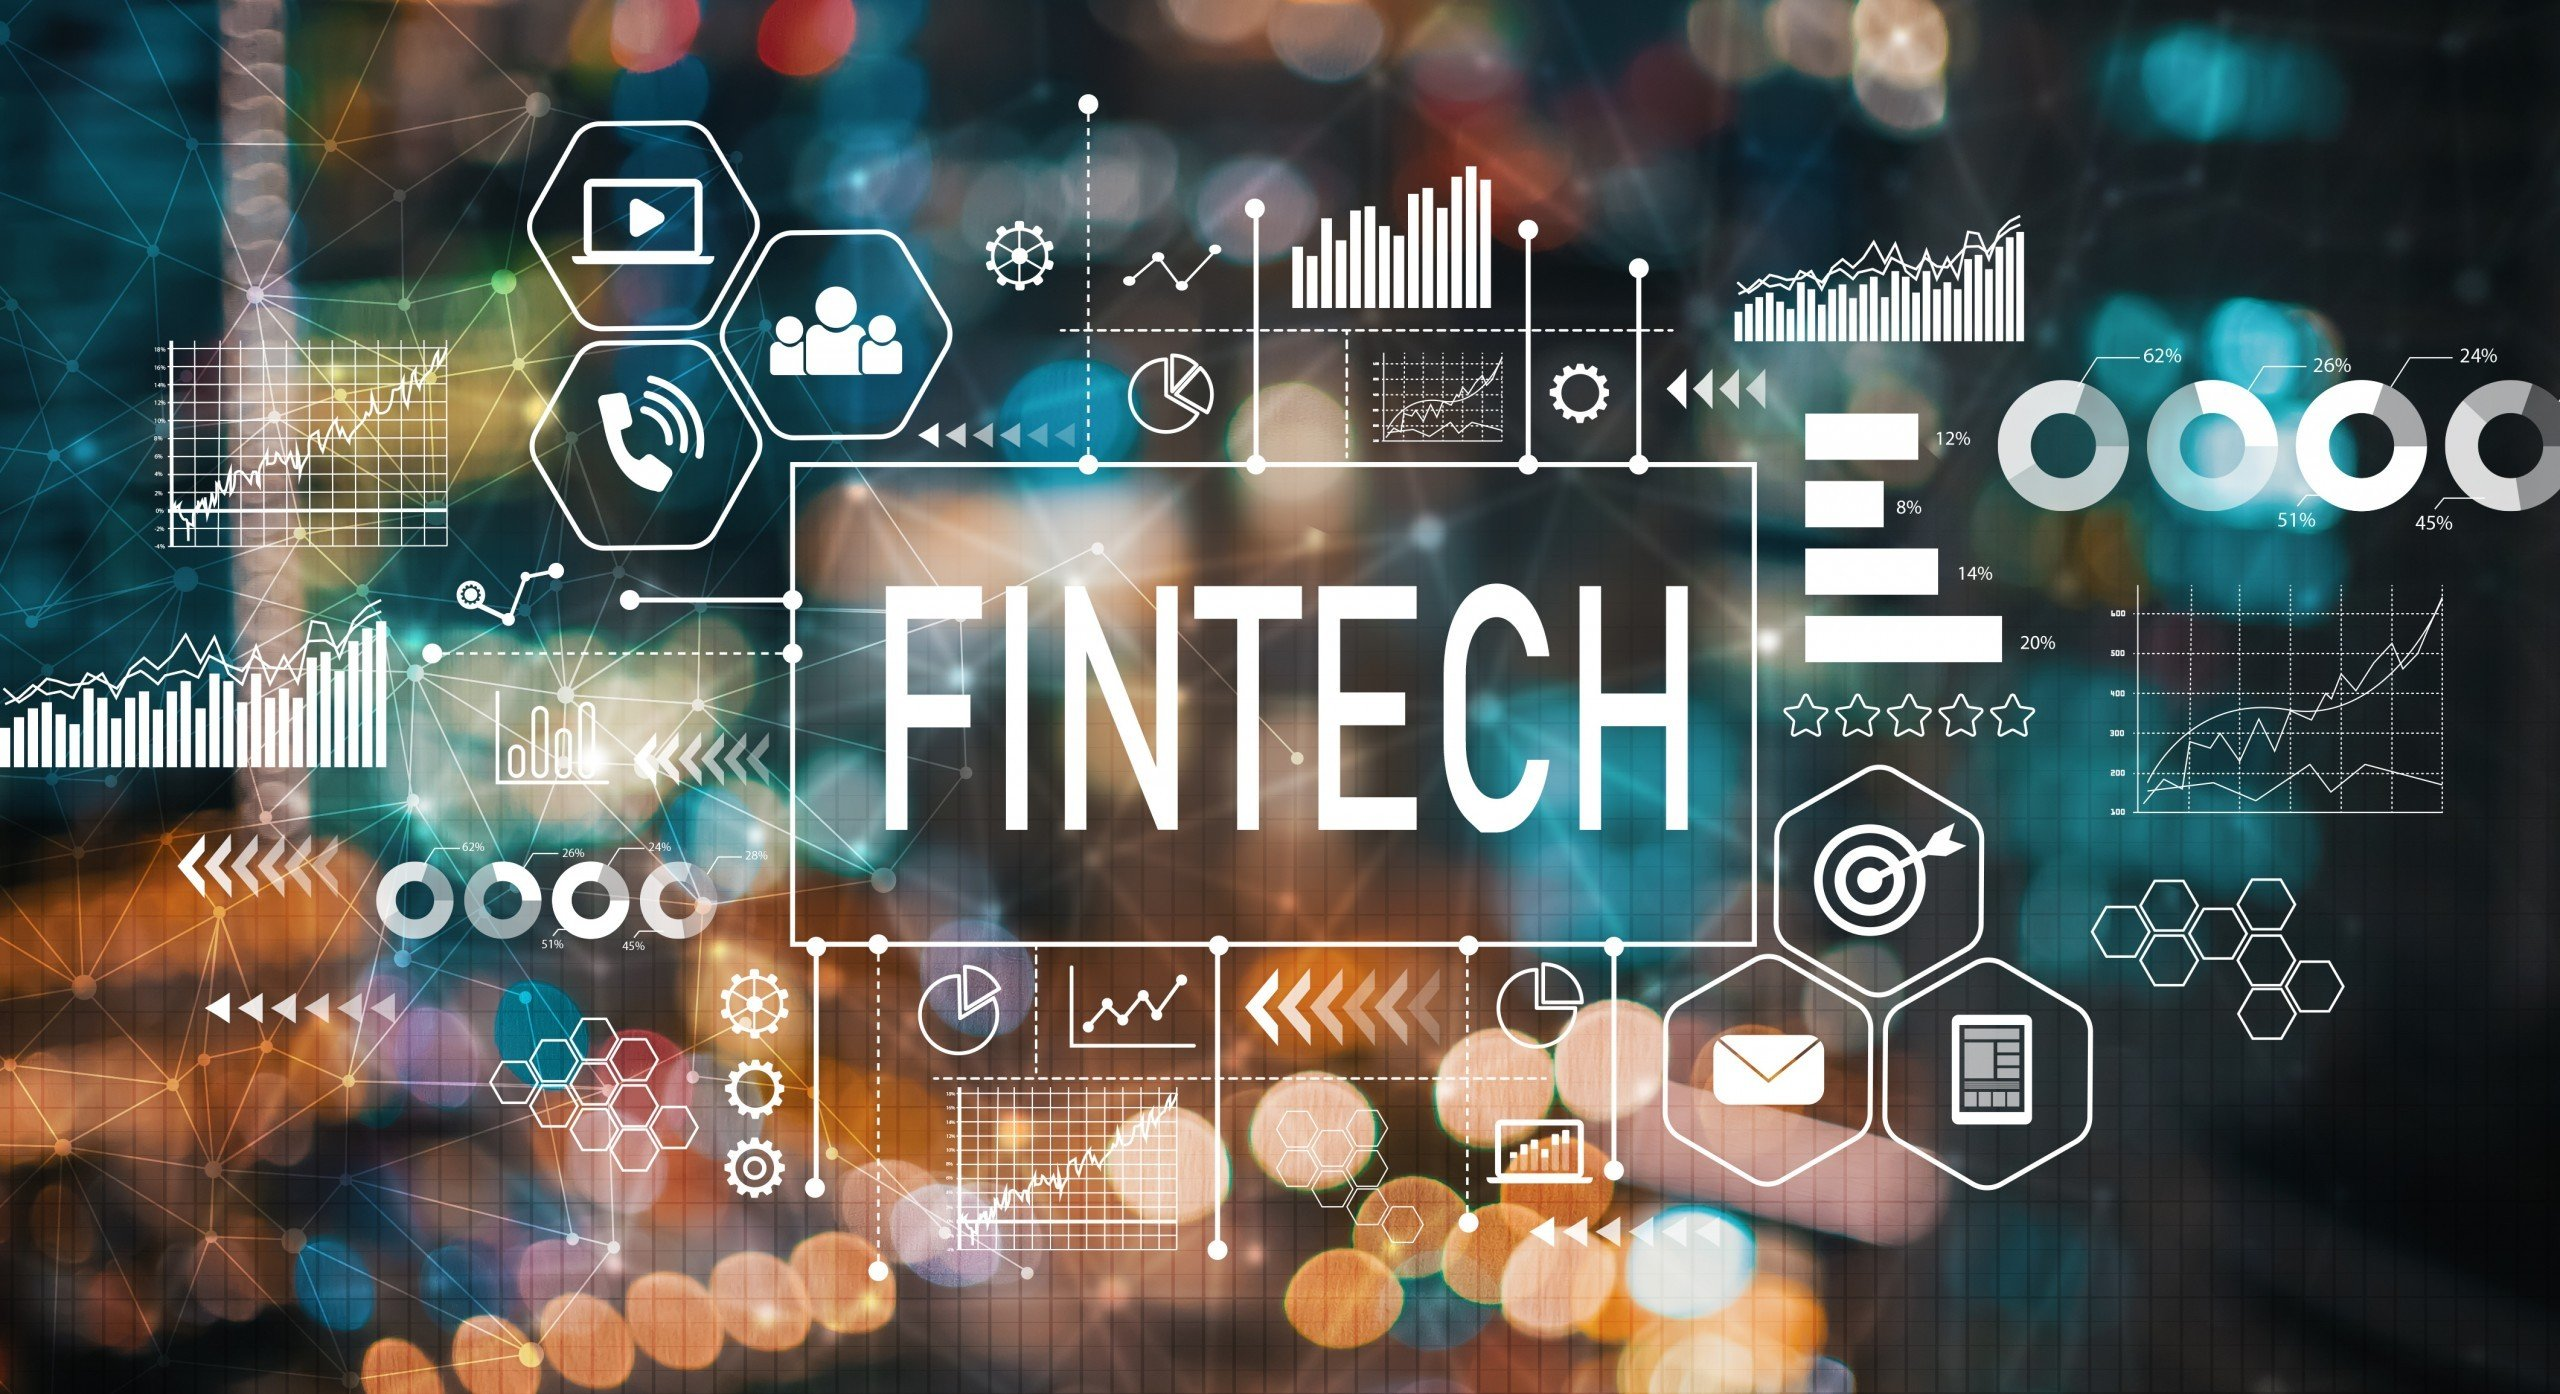 Fintech abstract diagram with bokeh lights in background